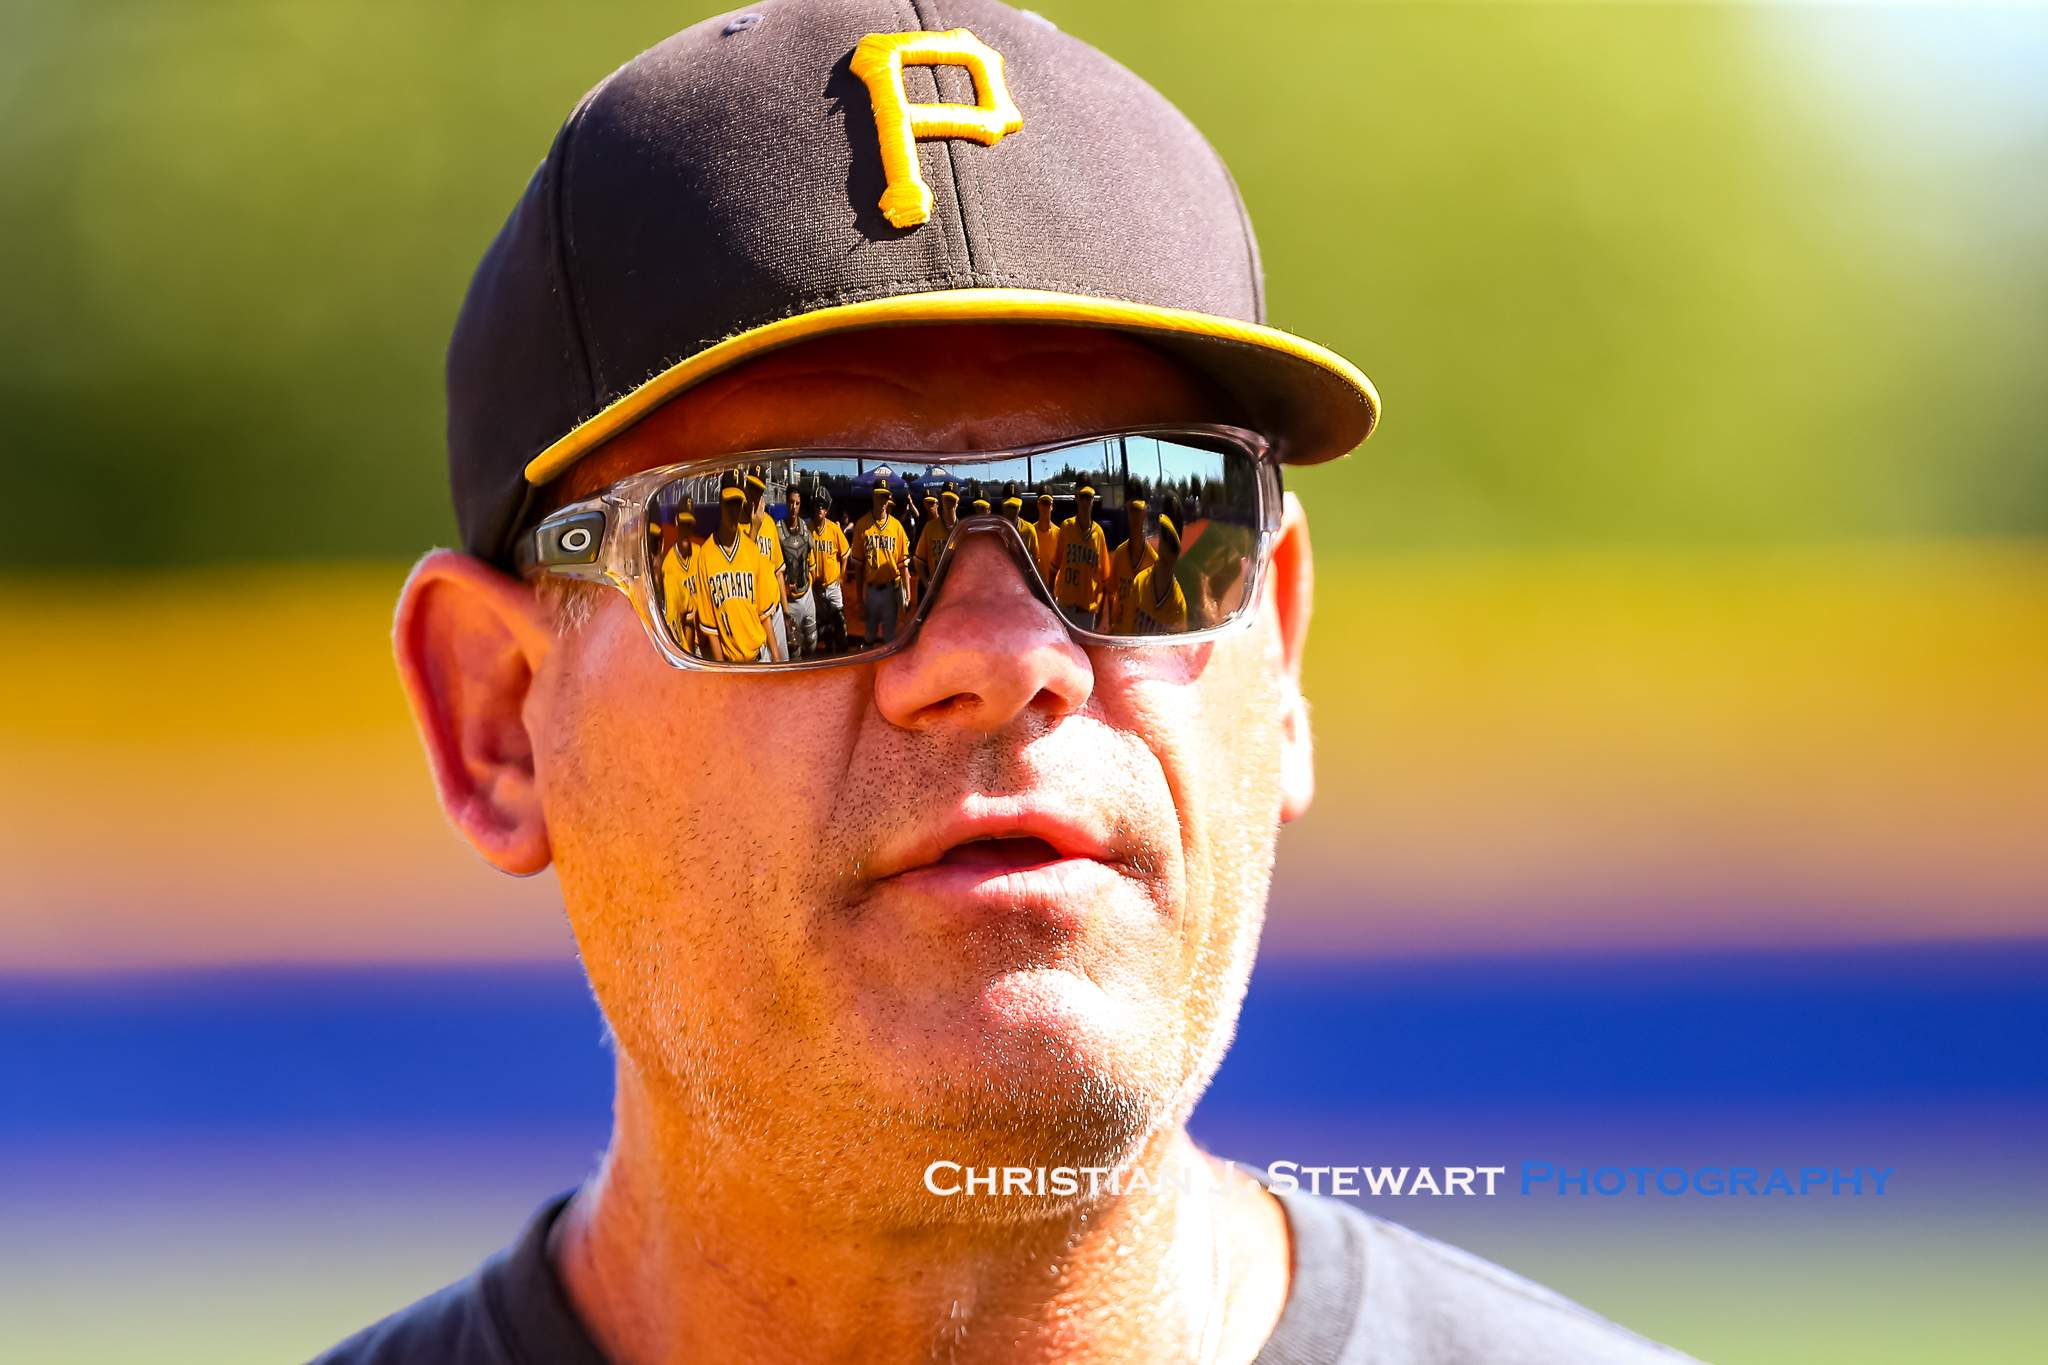 With his team reflected in his sunglasses, Pirates Head Coach Doug Rogers delivers some motivation late in Sunday's game (Photo: Christian J. Stewart)